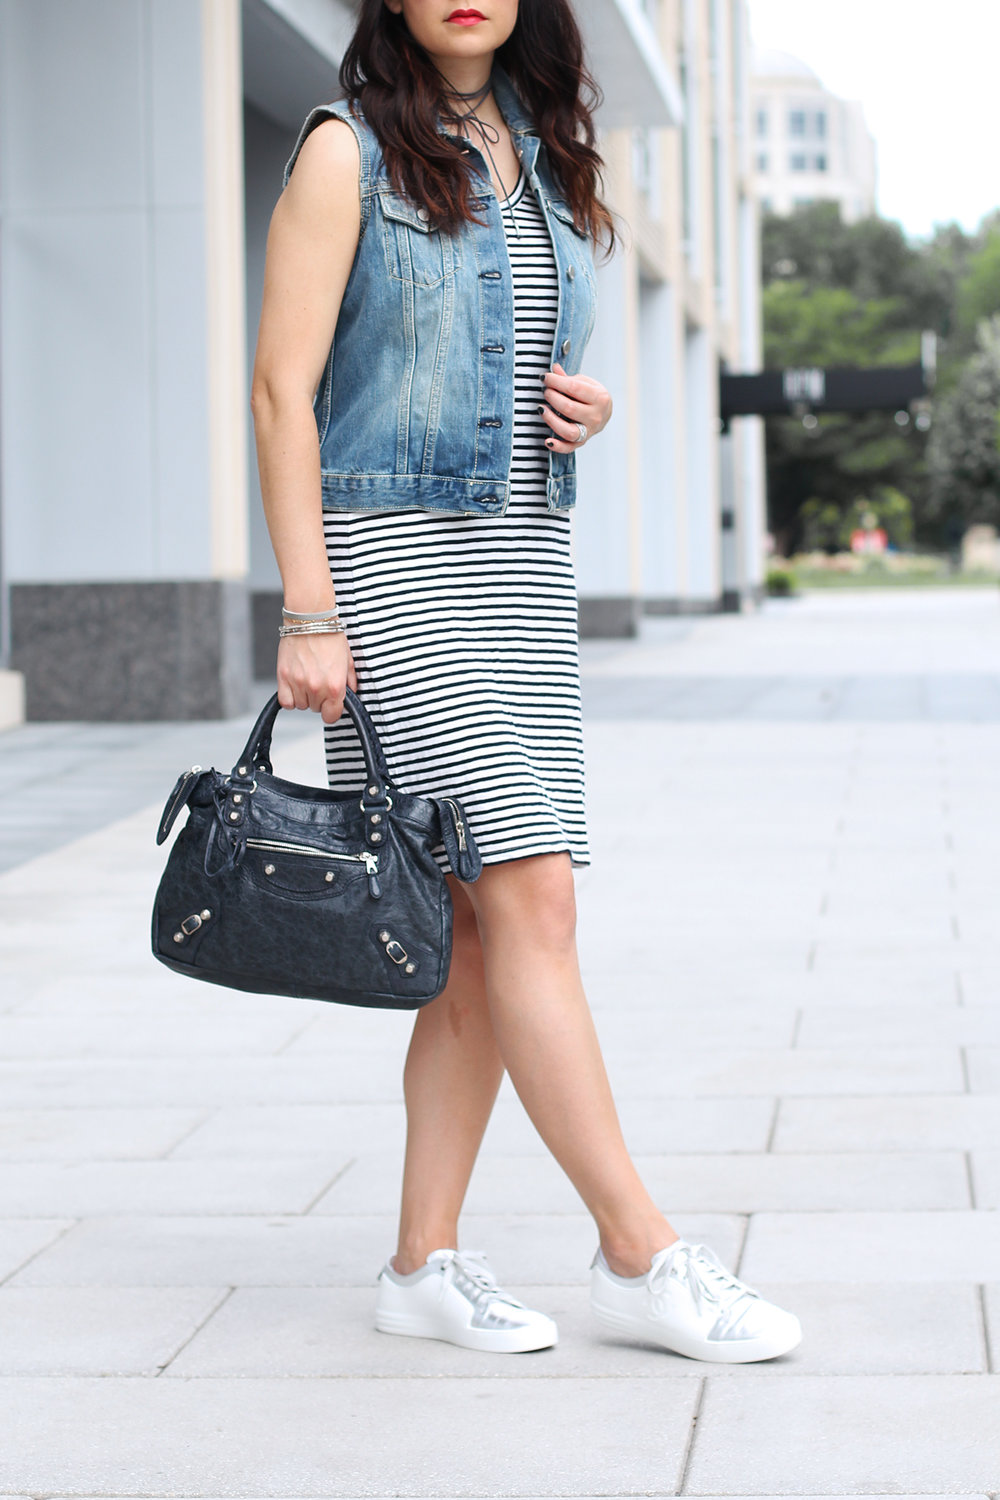 Chanel Sneakers with Dress Outfit